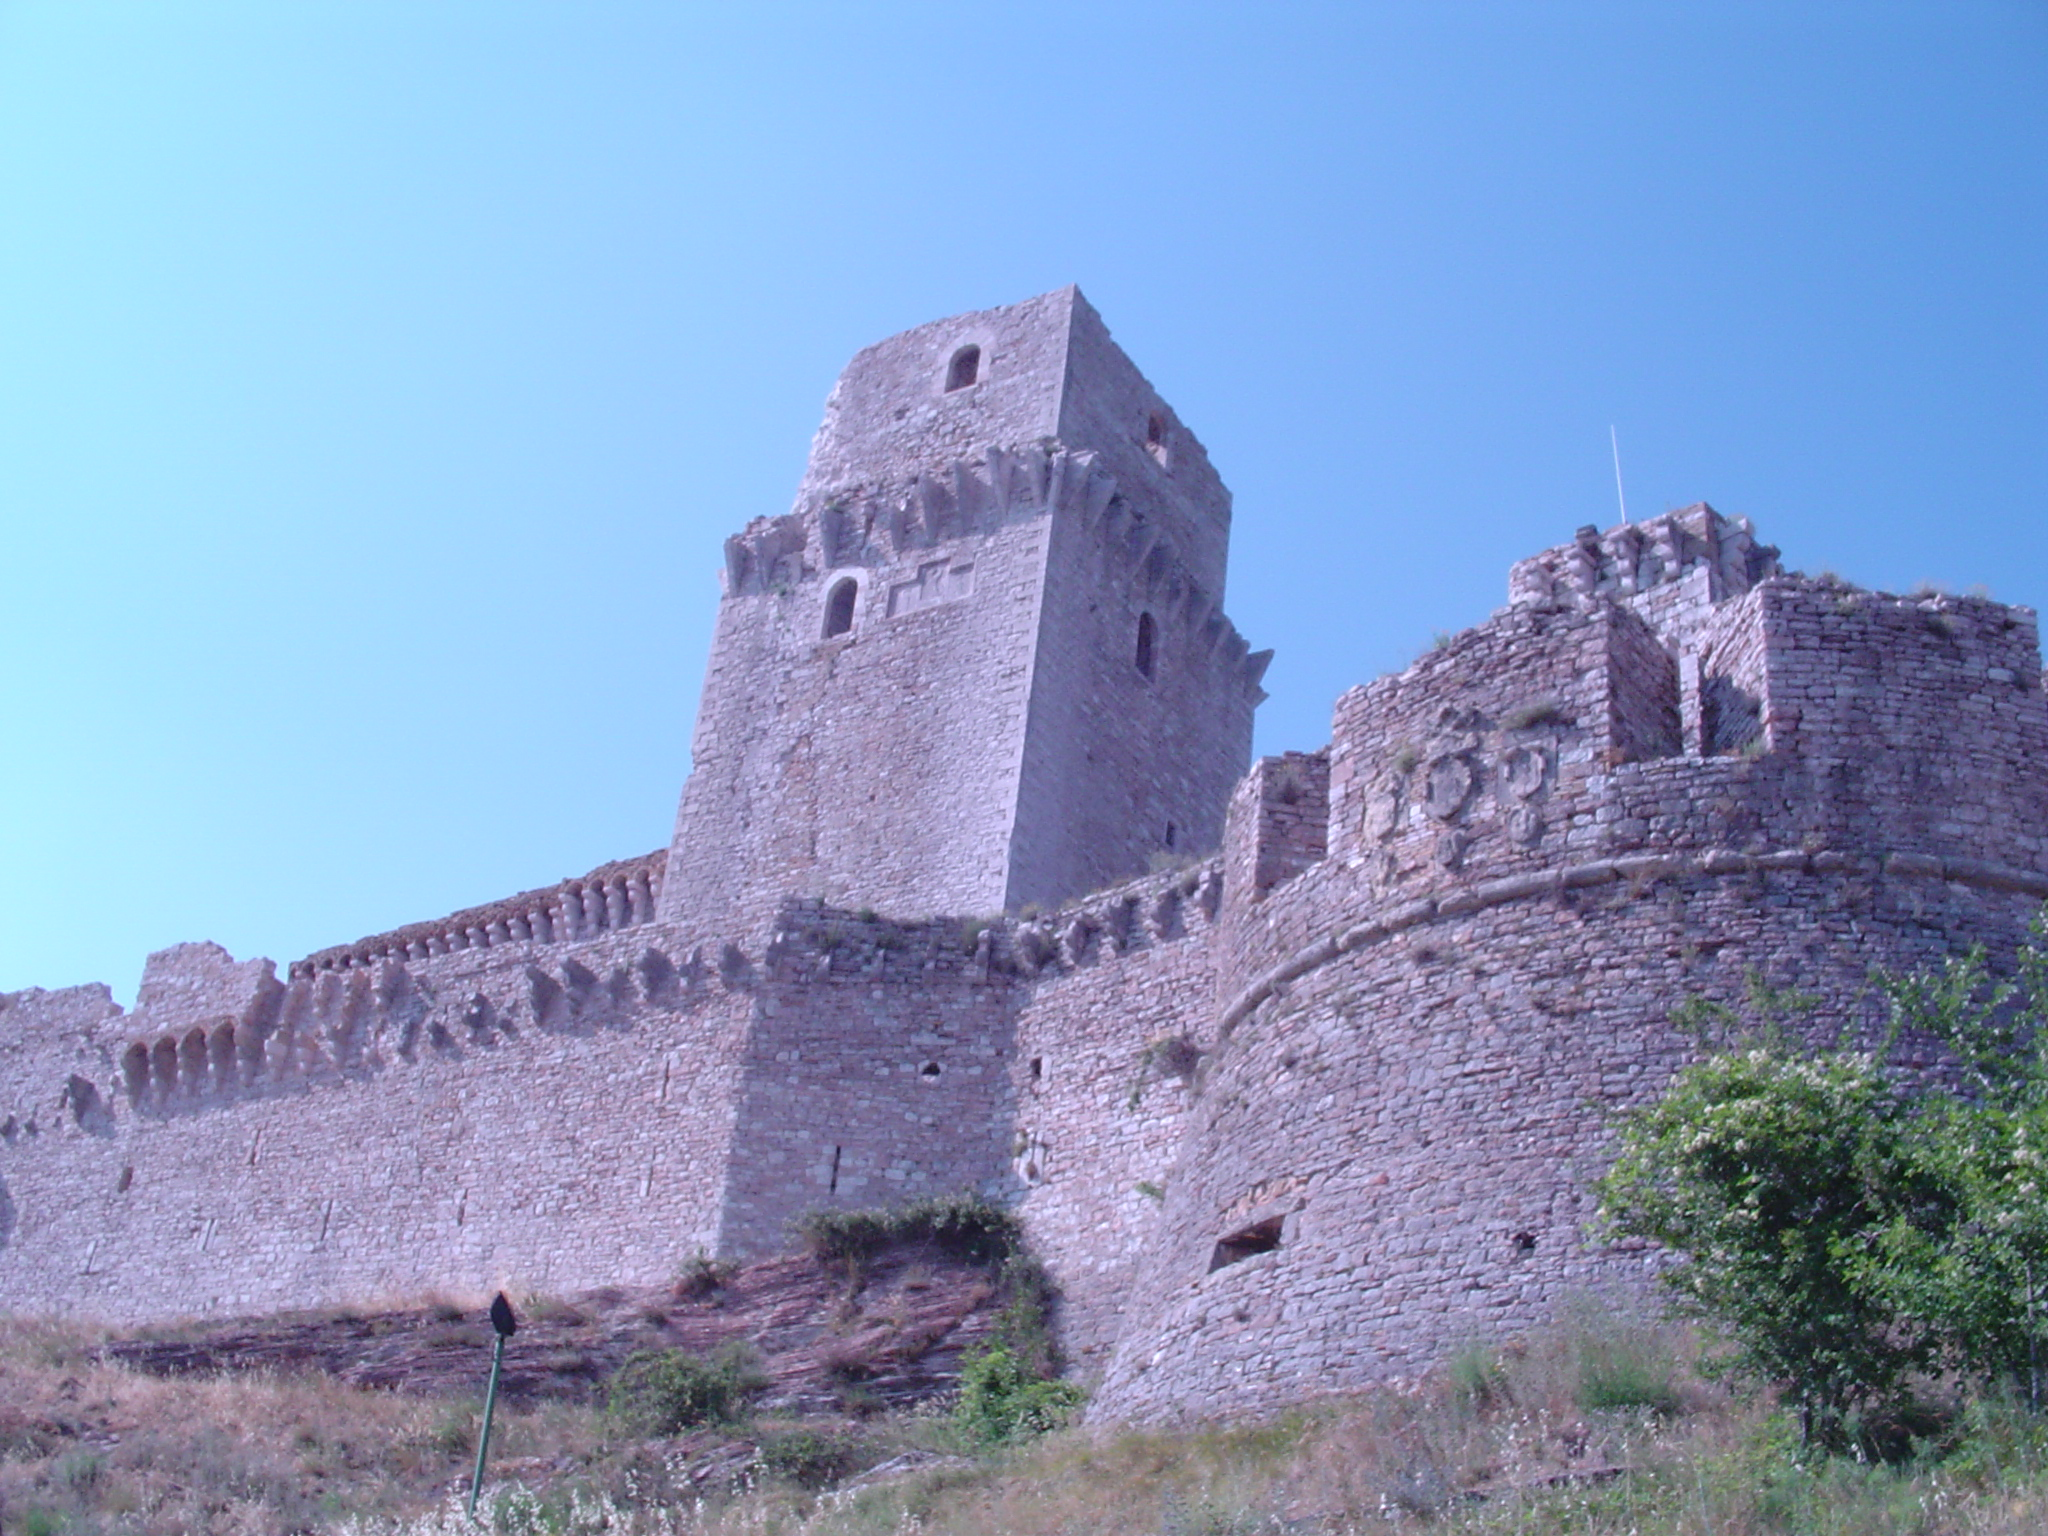 The castle at Assisi